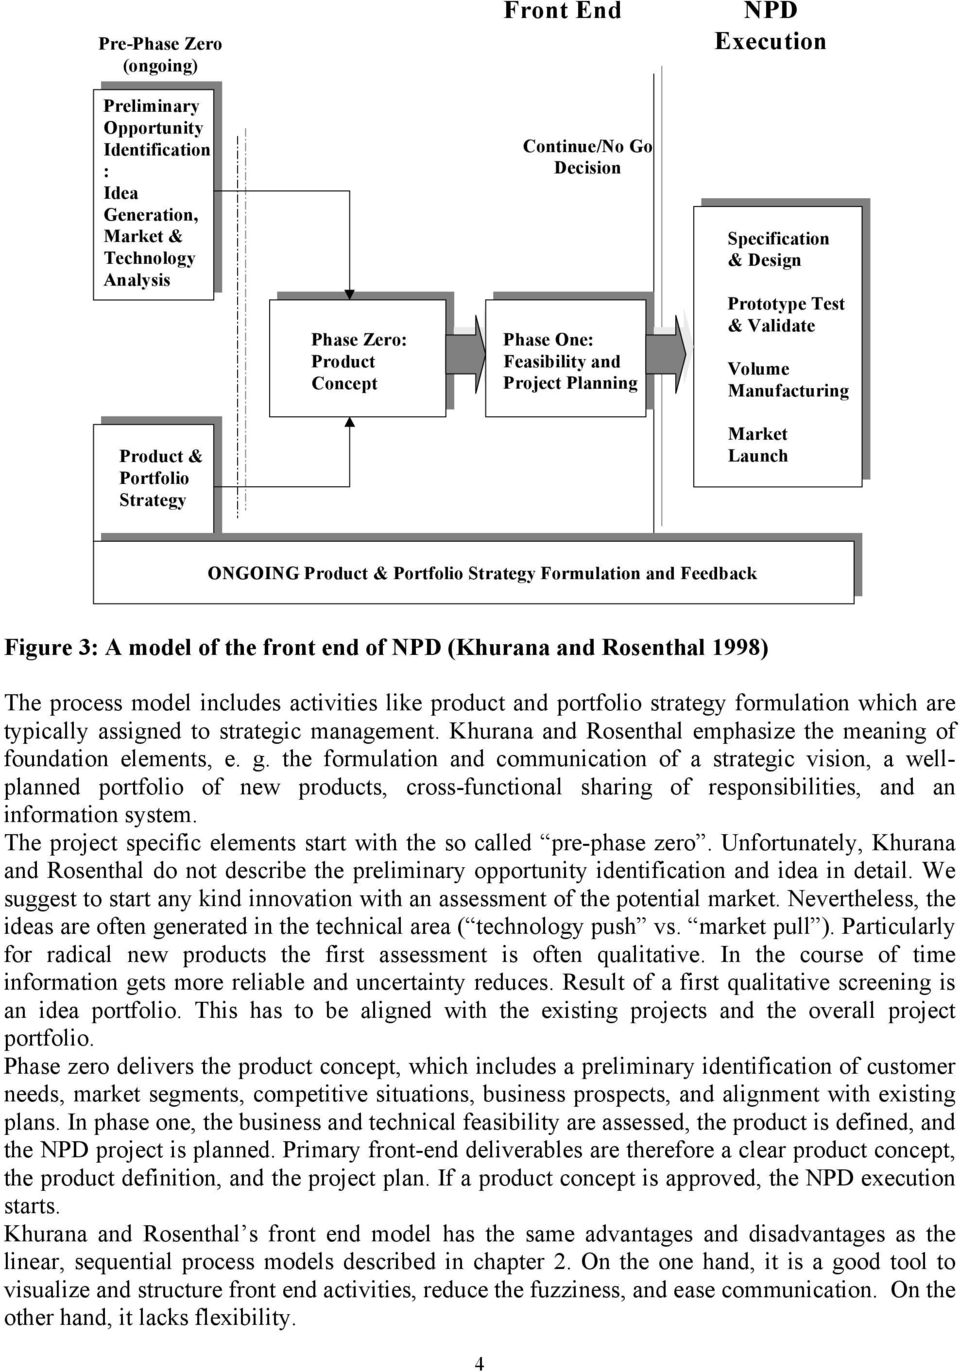 Feedback Figure 3: A model of the front end of NPD (Khurana and Rosenthal 1998) The process model includes activities like product and portfolio strategy formulation which are typically assigned to